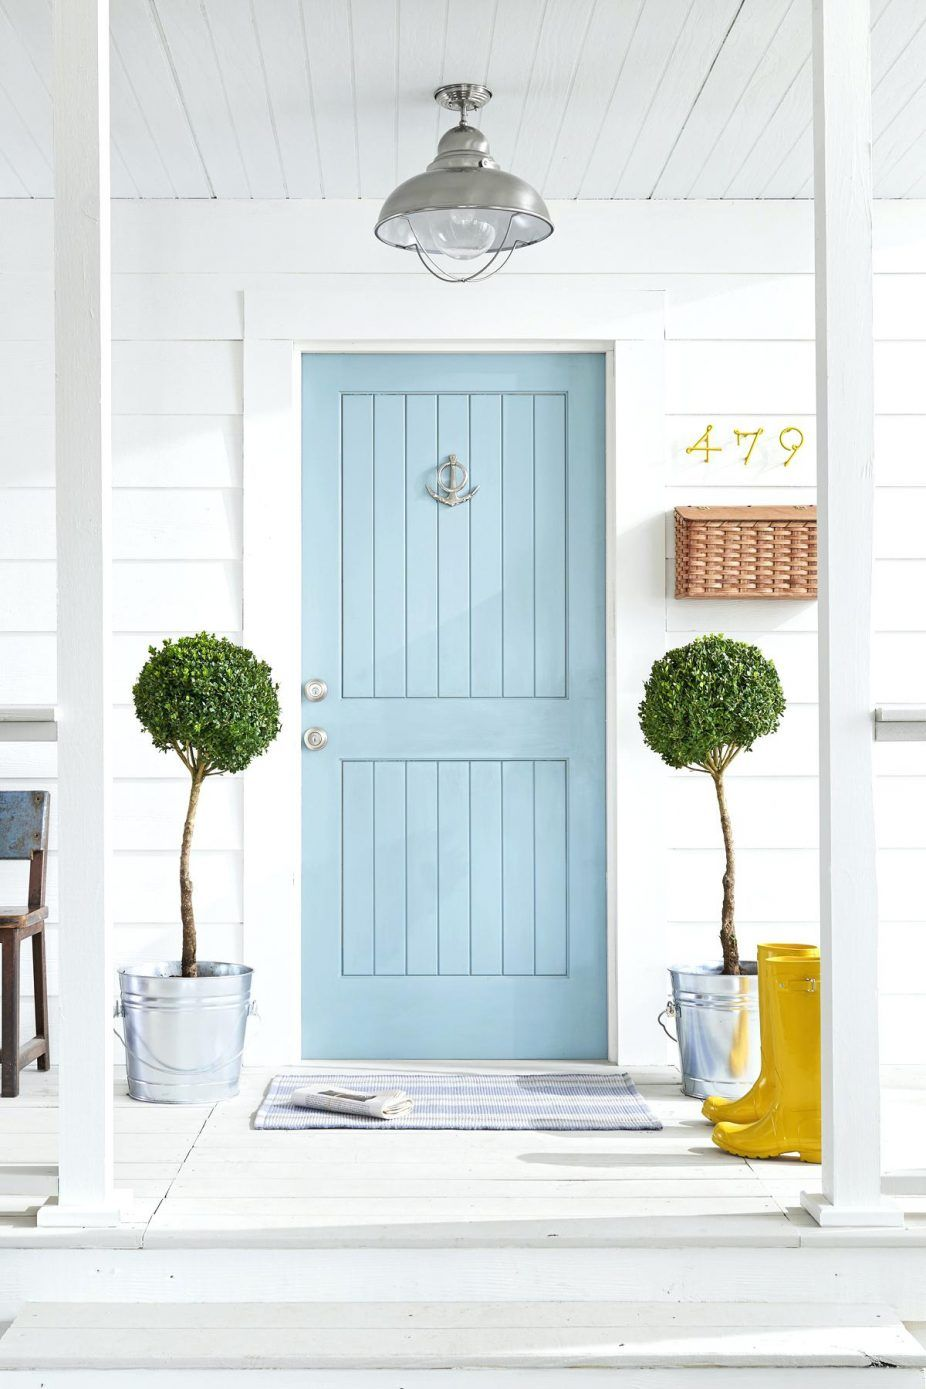 50 Shades Of Haint Blue A Helpful Round Up List Of Haint Blue Or Dirt Dauber Blue Paint Colors Blue Porch Ceiling Haint Blue Porch Ceiling Porch Paint